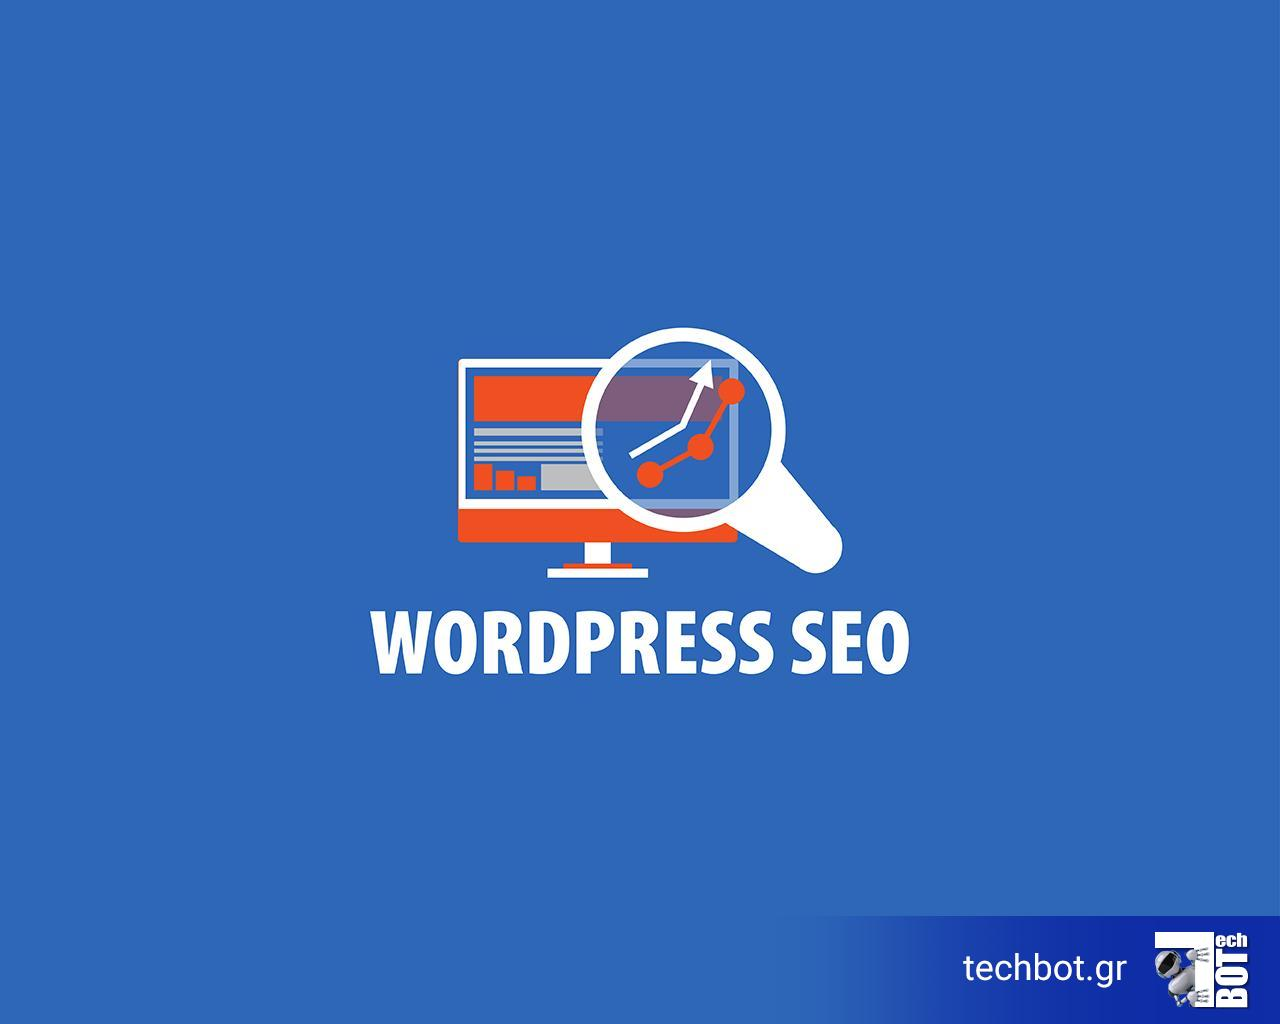 b6c96a9b0e22 How to Setup and Optimize Your Blog for WordPress SEO